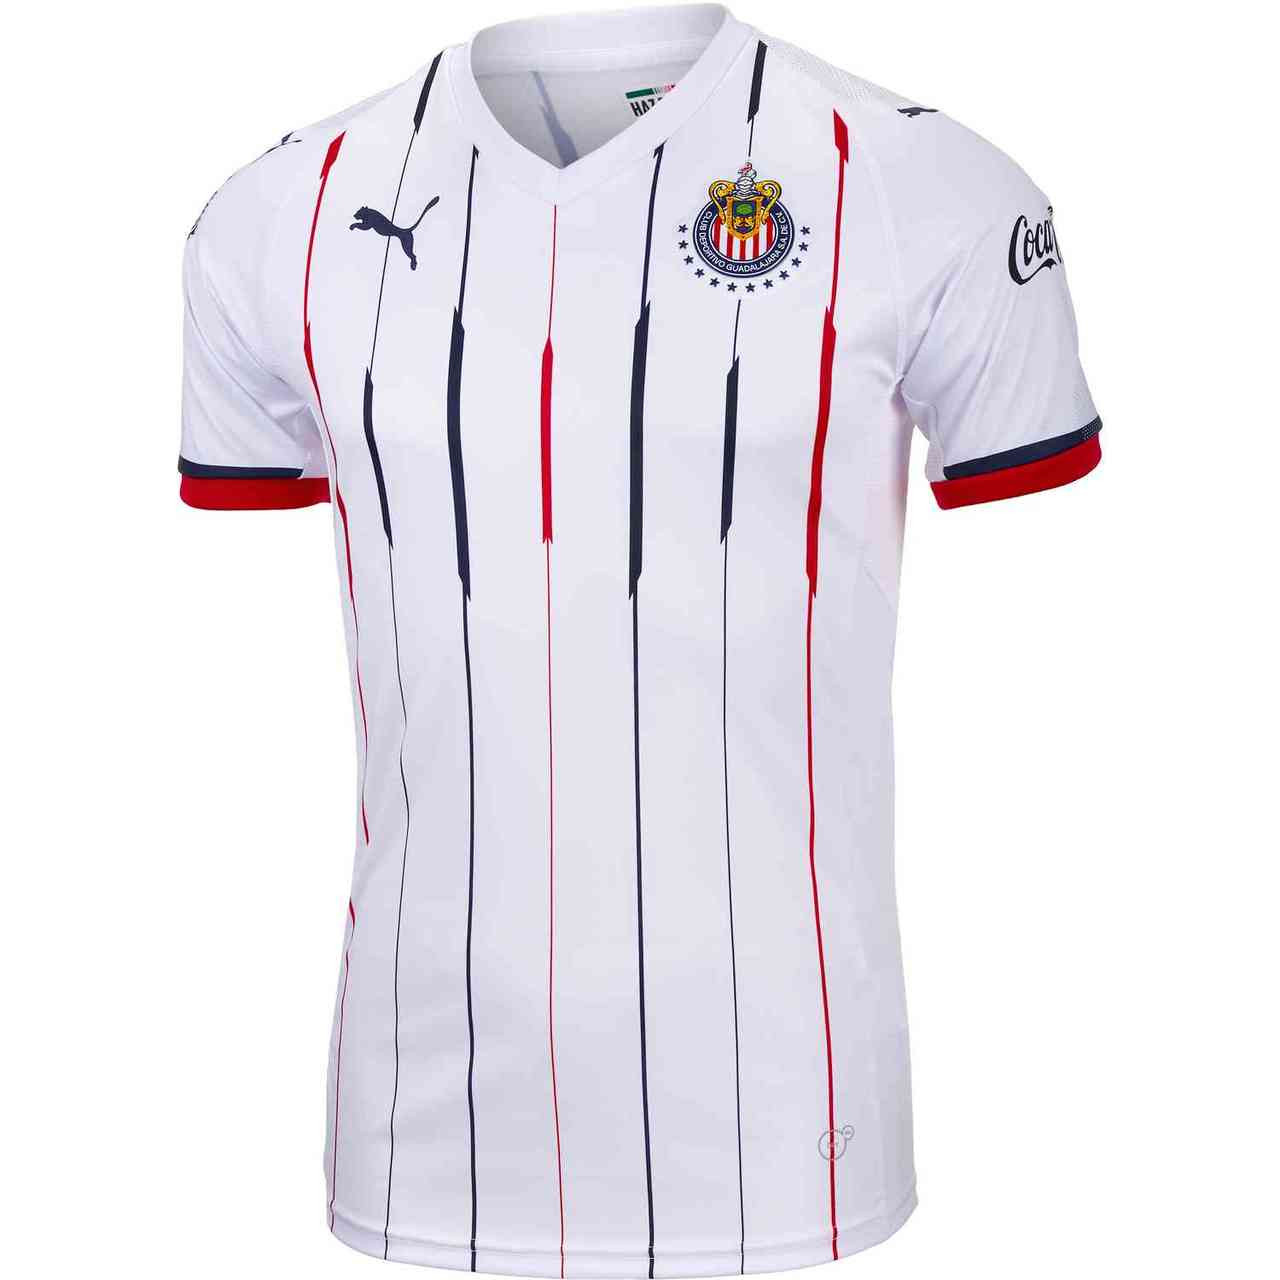 1397edd06 Puma Chivas 18 19 Replica Away Jersey - White Red-New Navy RC (032119) -  ohp soccer